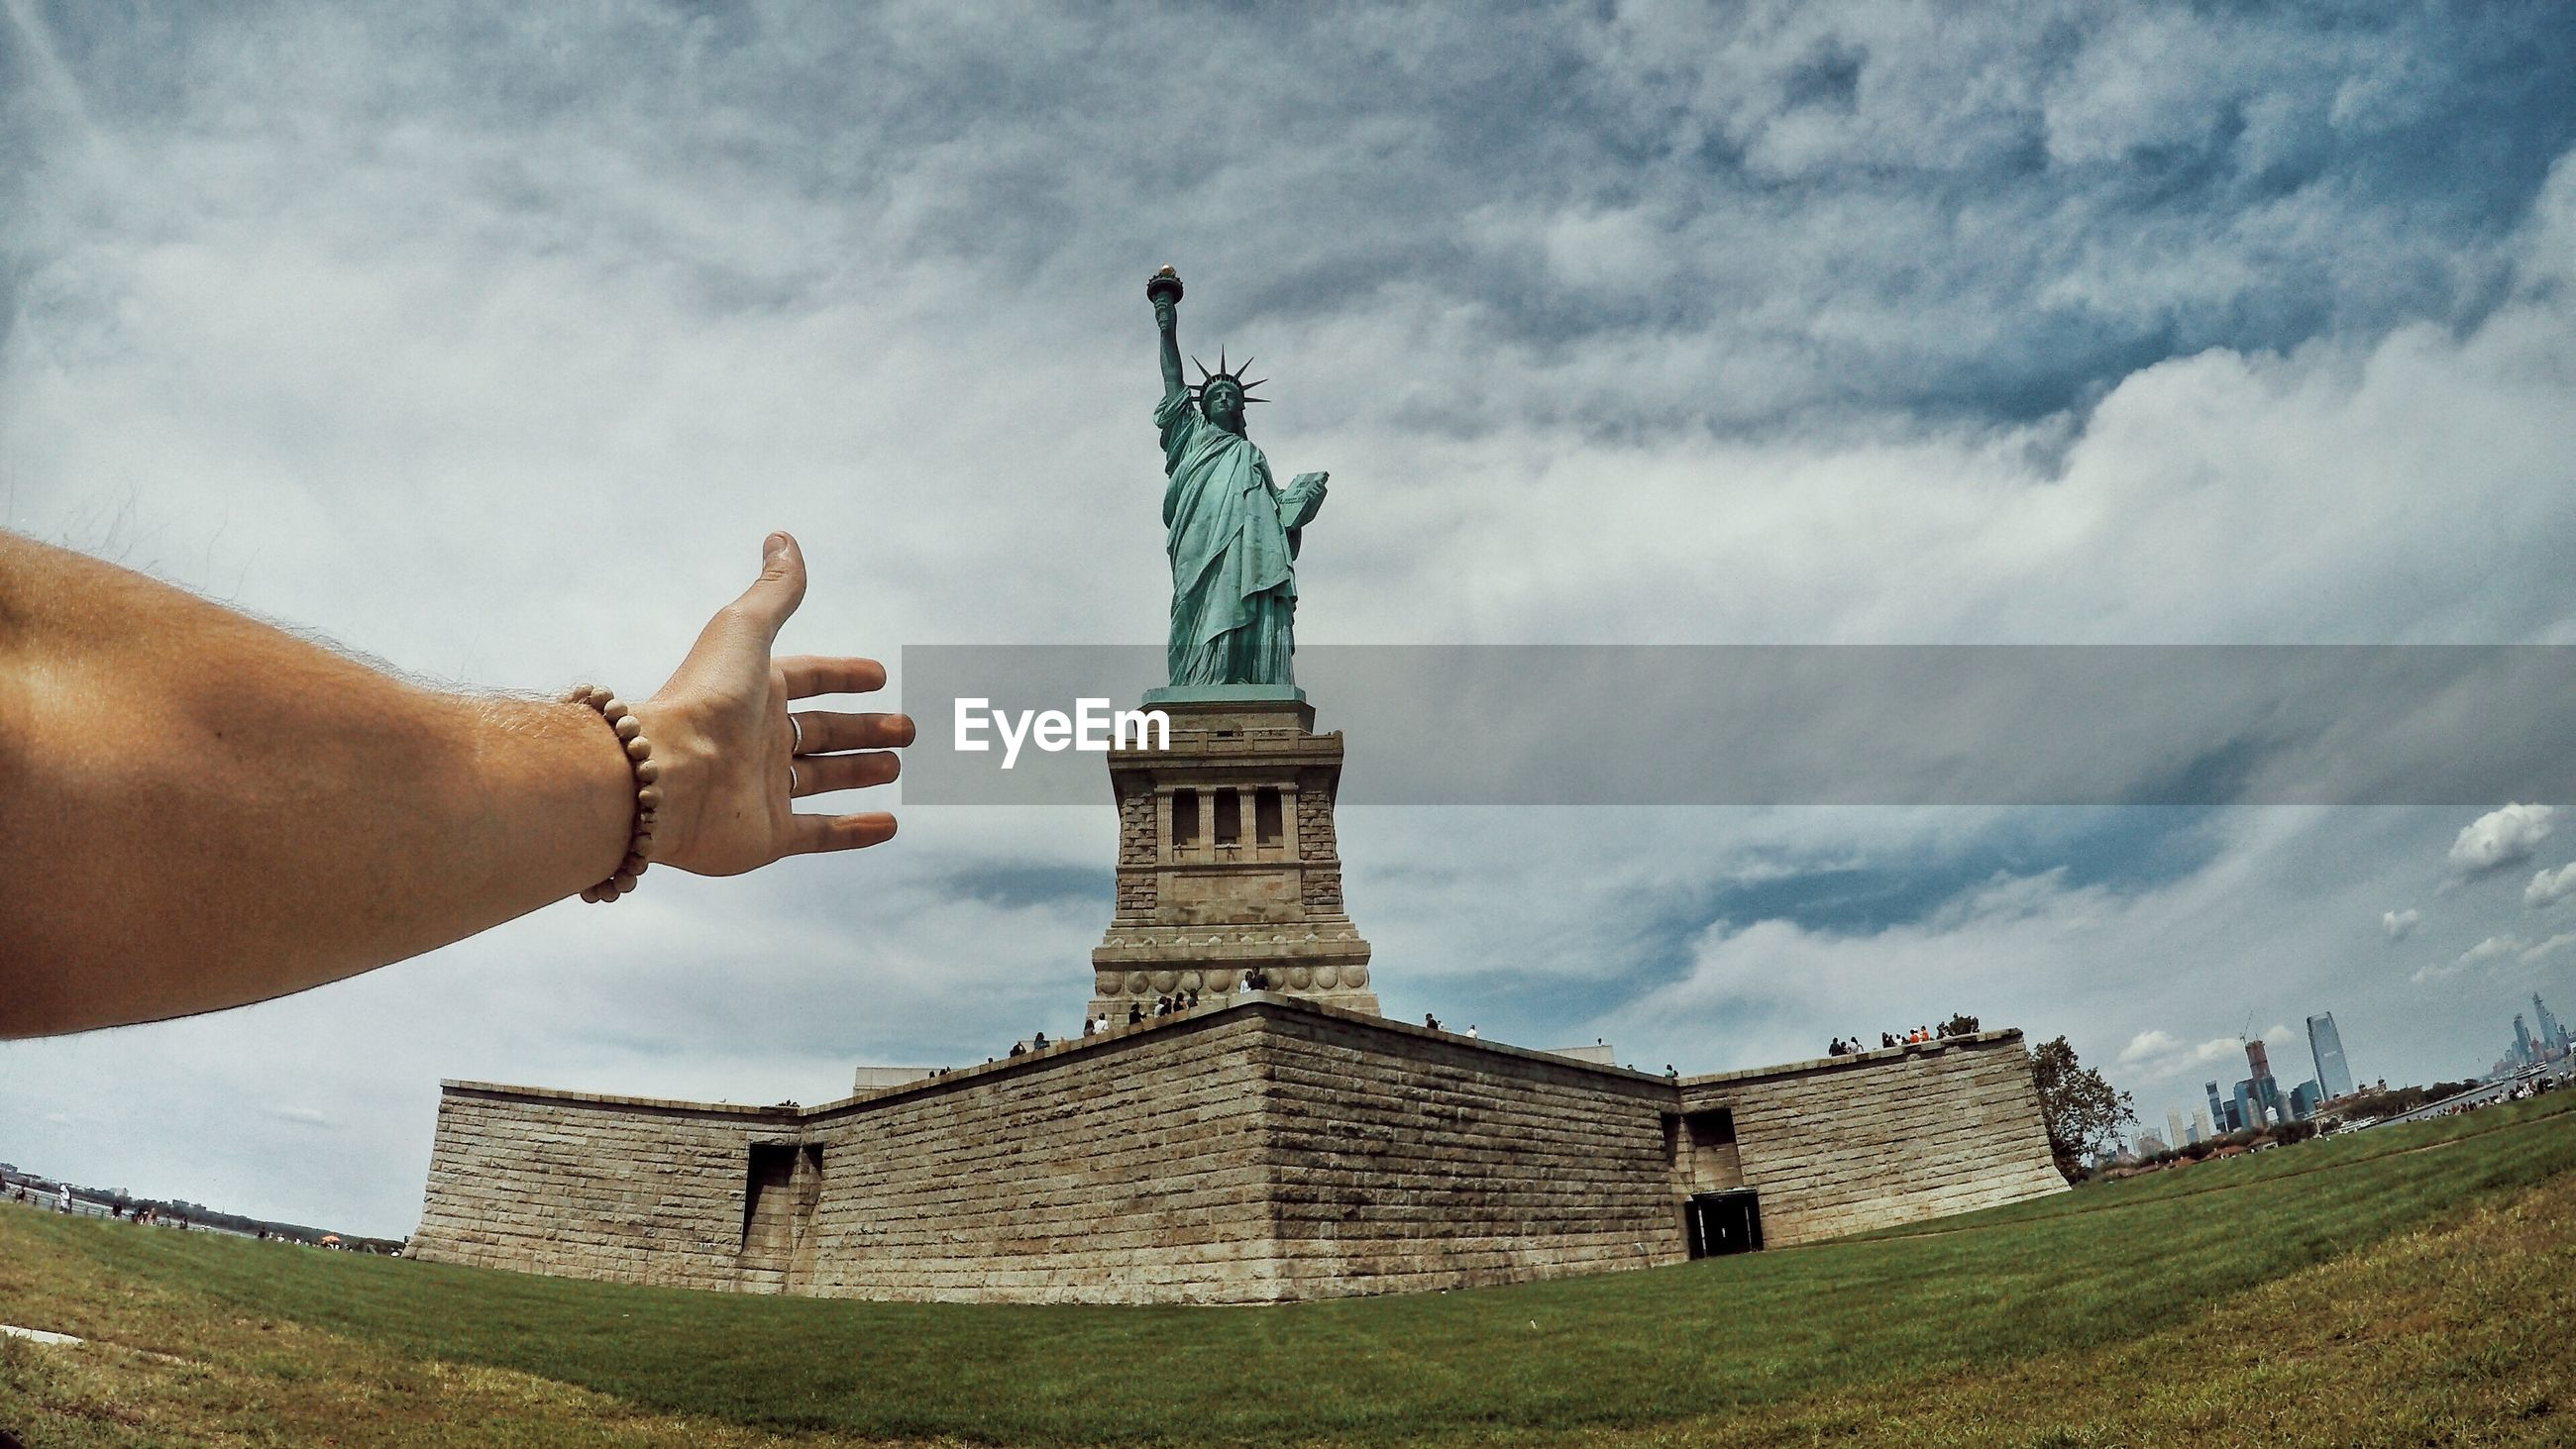 Low angle view of hand gesturing with statue of liberty in background against cloudy sky